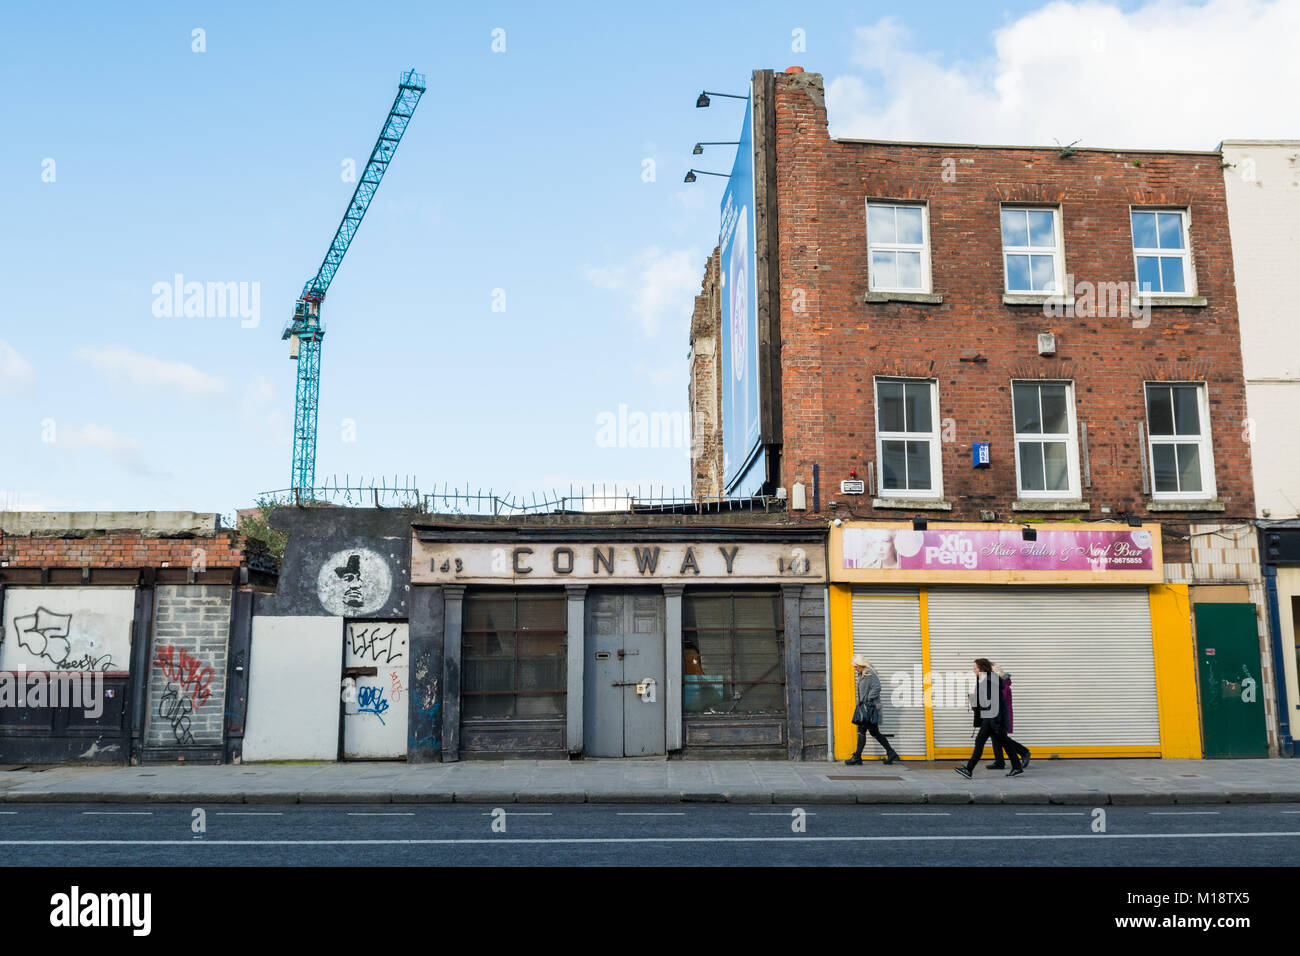 derelict buildings and urban decay on Thomas Street, Old Dublin Town, Ireland, UK - Stock Image